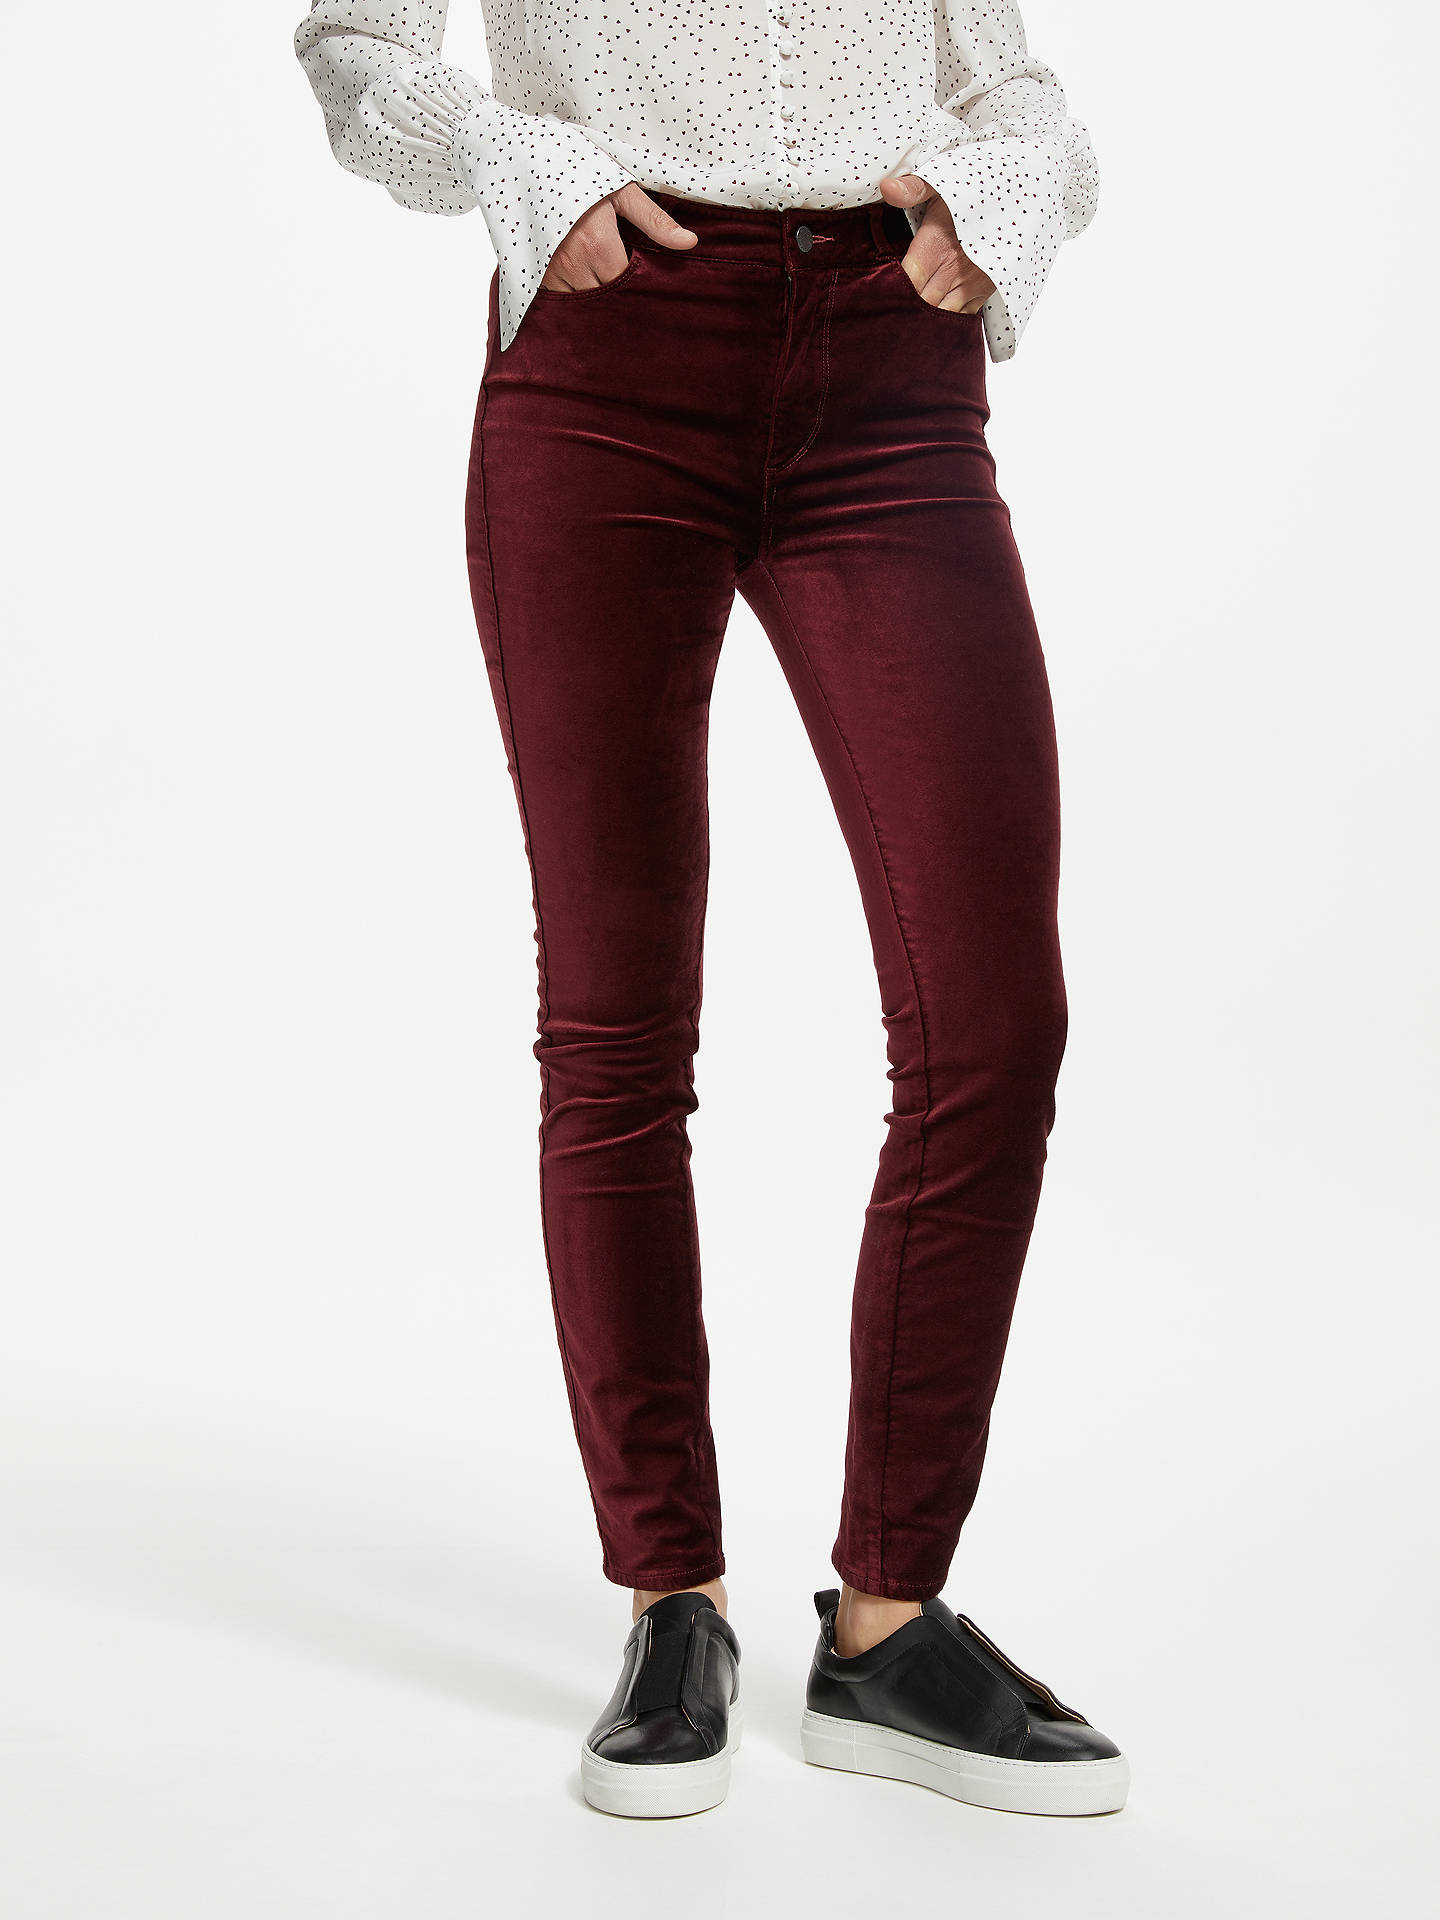 PAIGE Womens Hoxton High Rise Ultra Skinny Jean